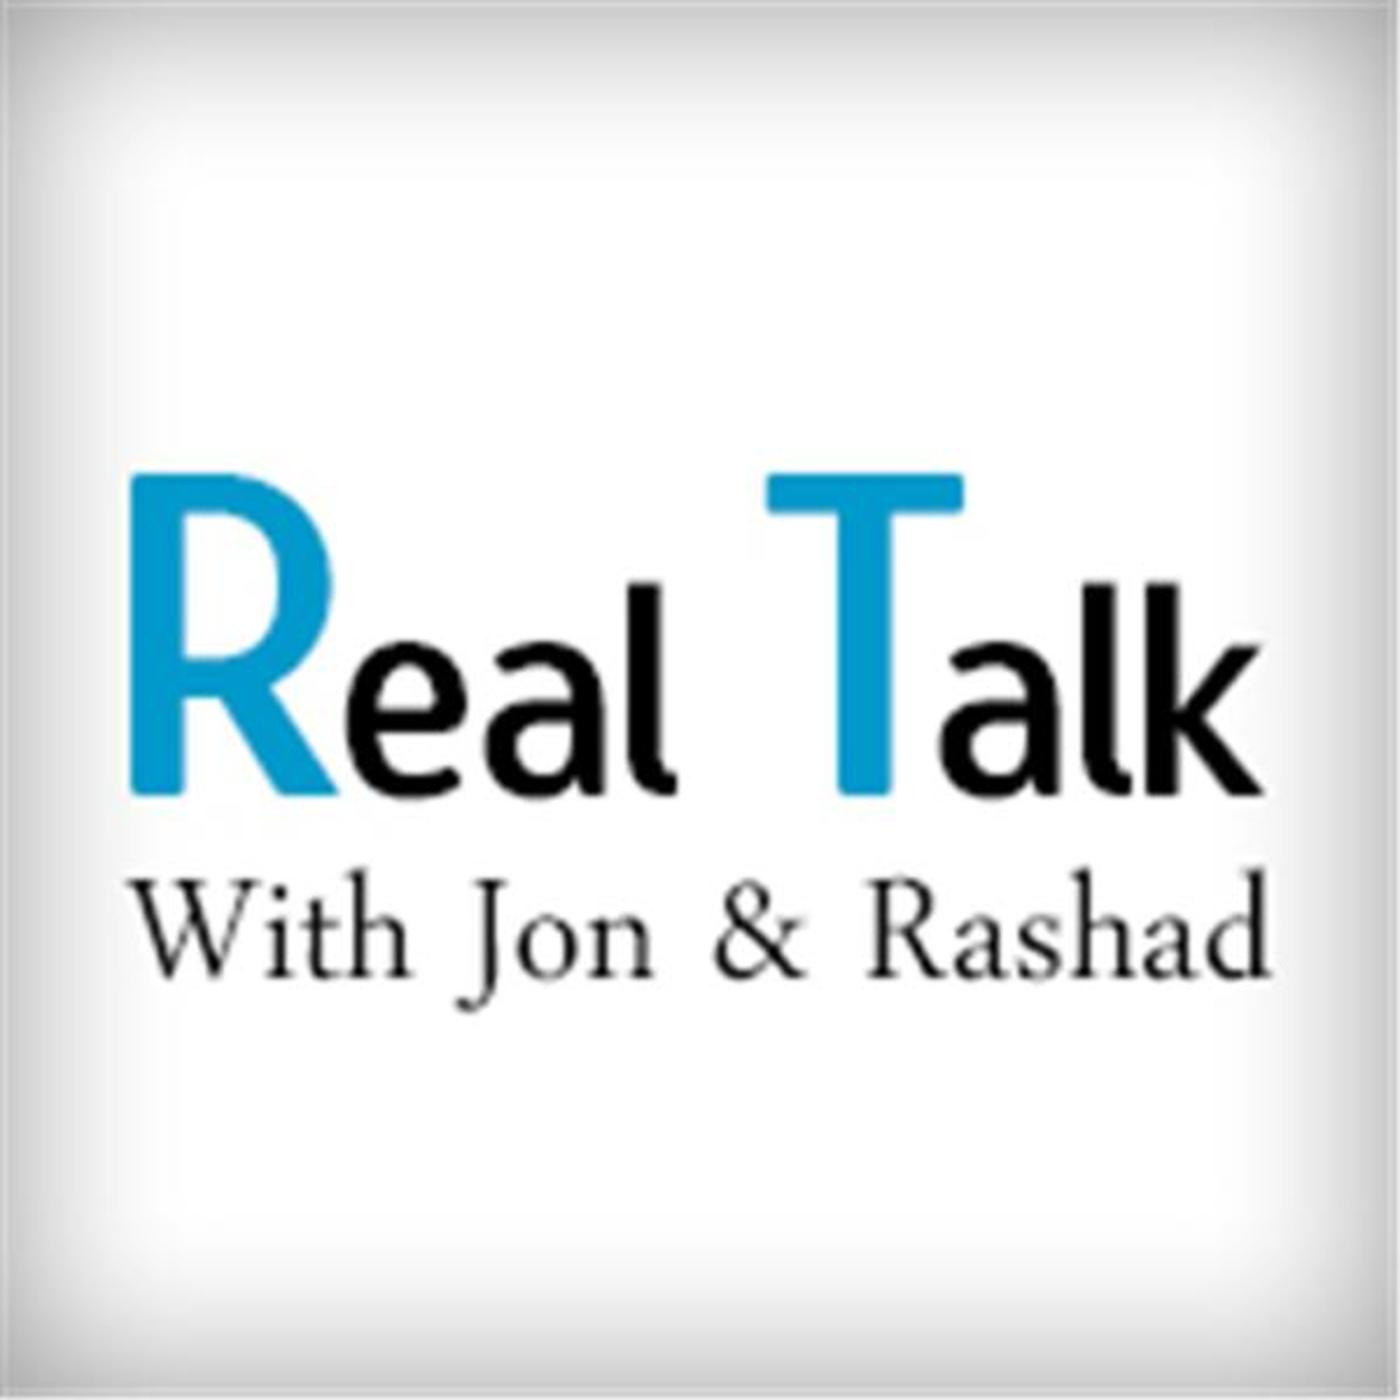 Real Talk With Jon & Rashad